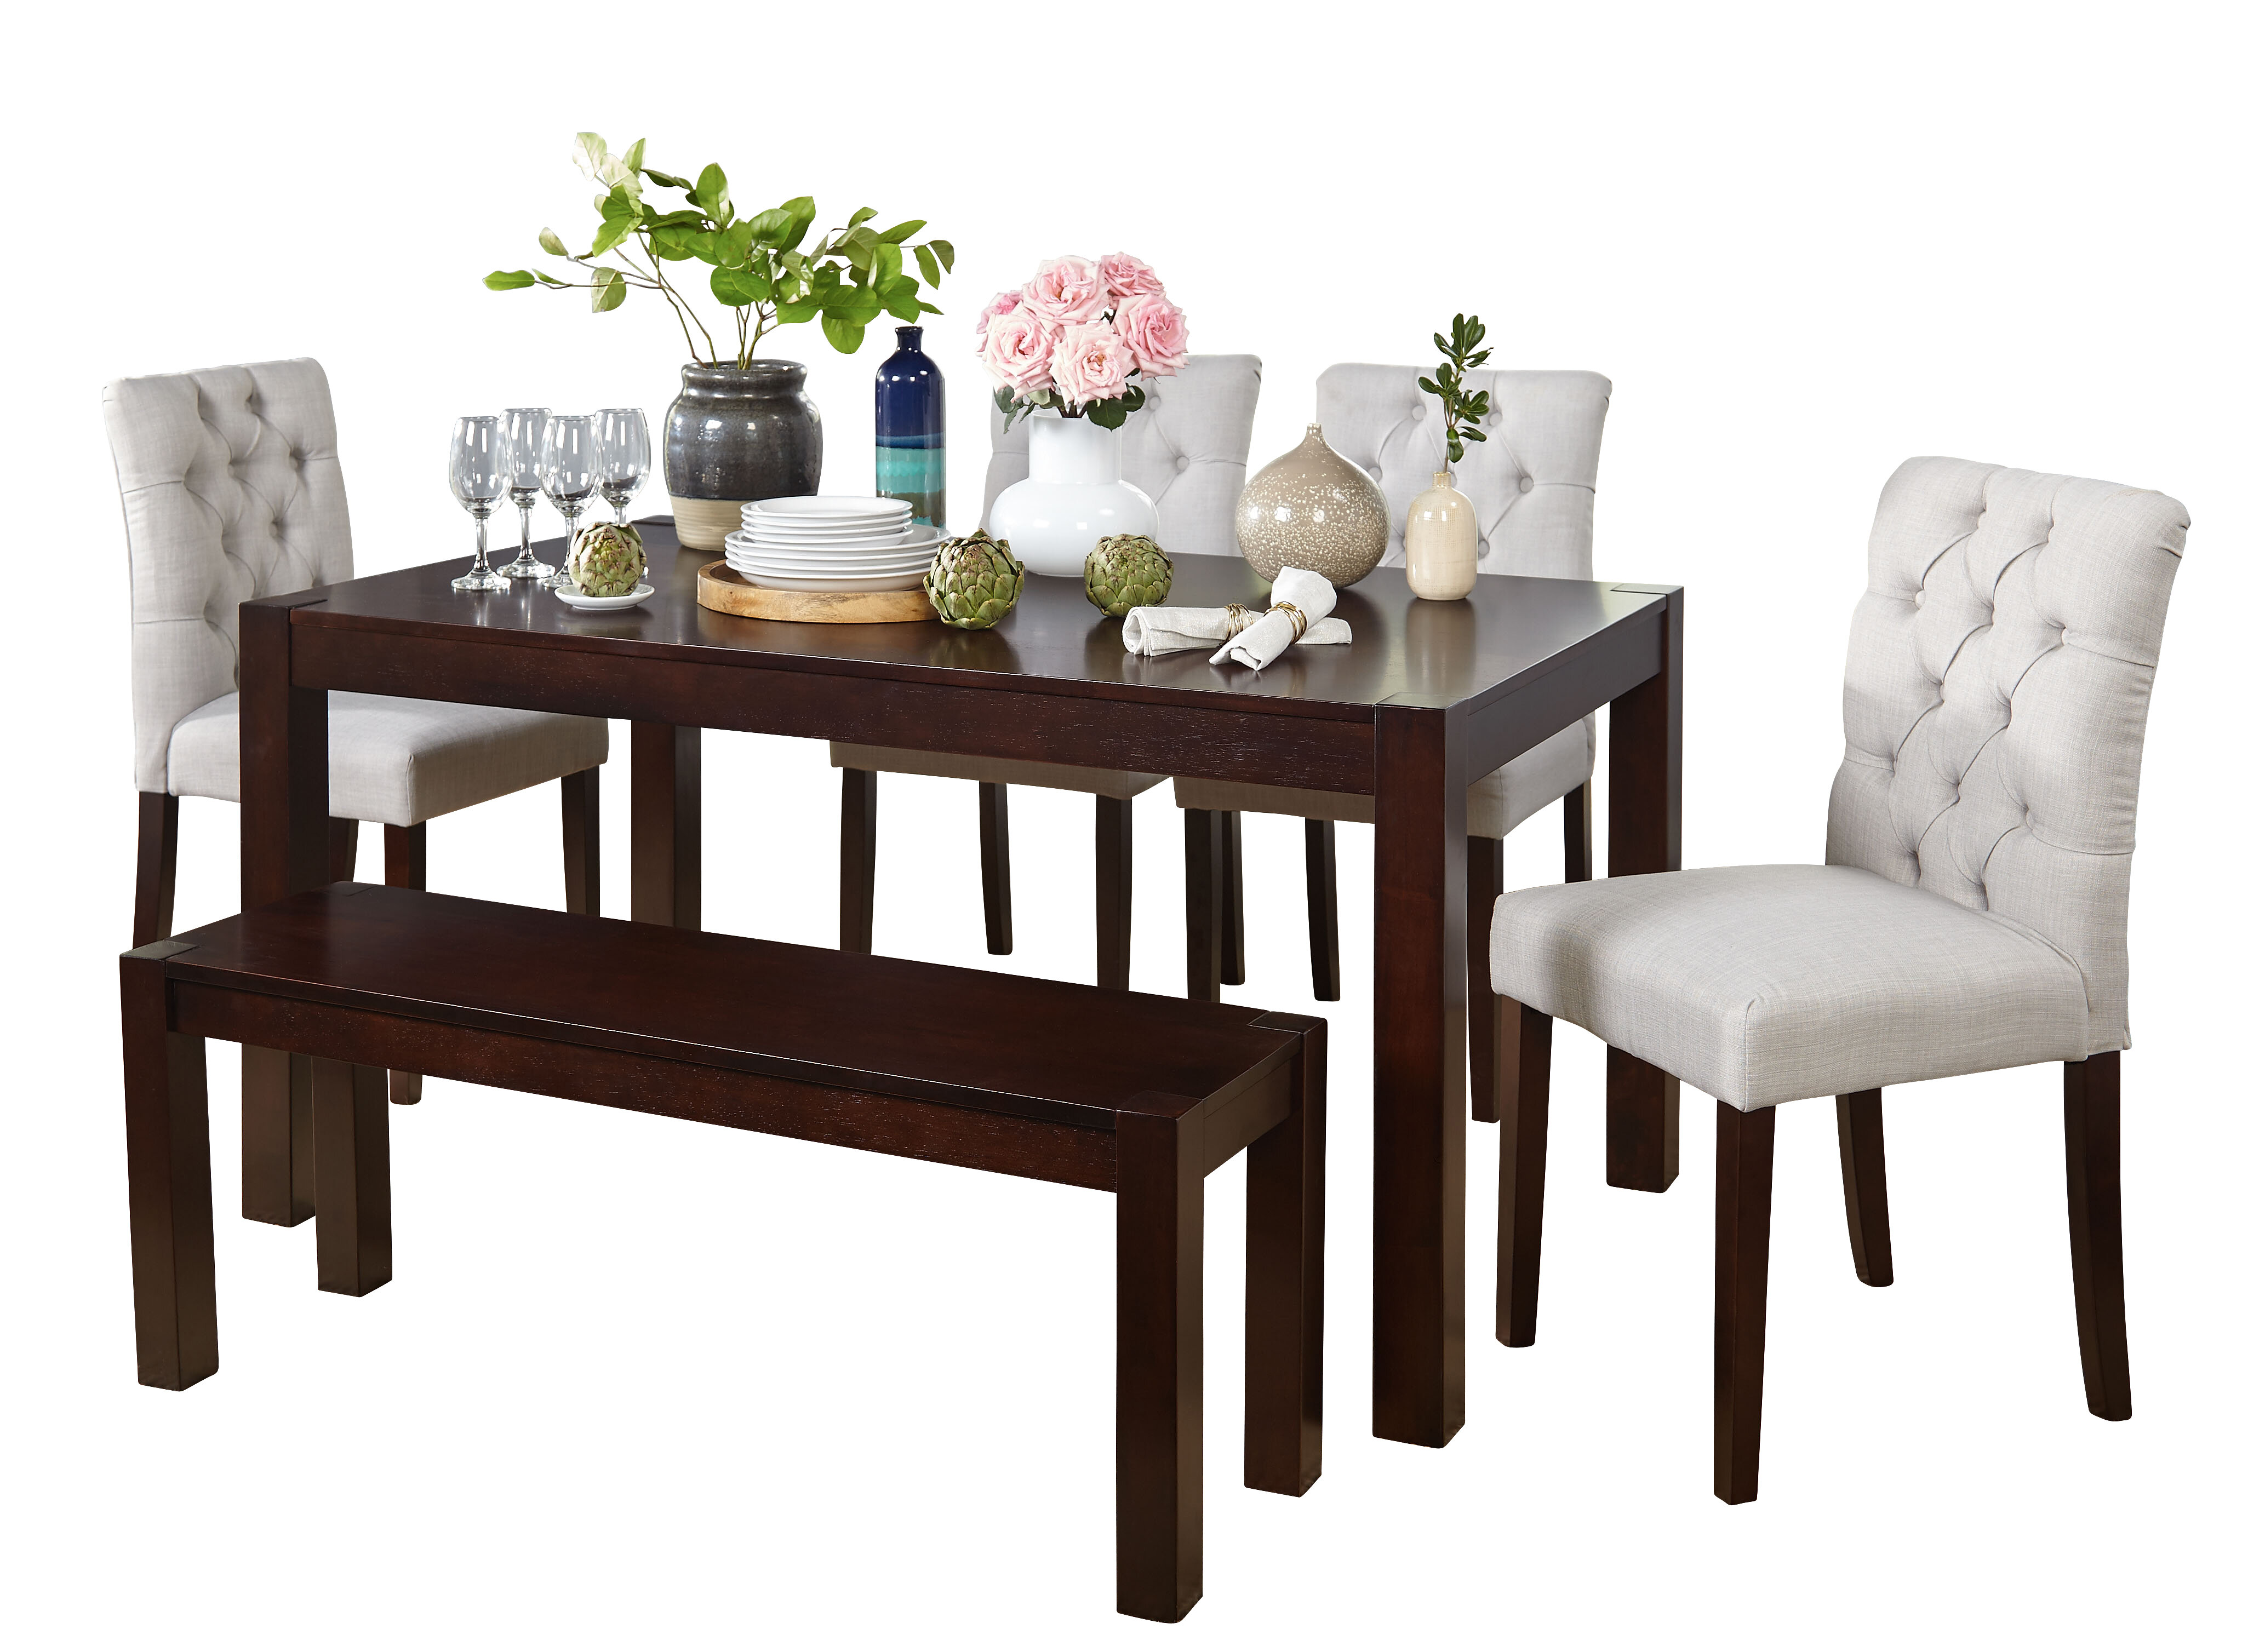 Darby Home Co Gardners 6 Piece Dining Set Reviews Wayfair